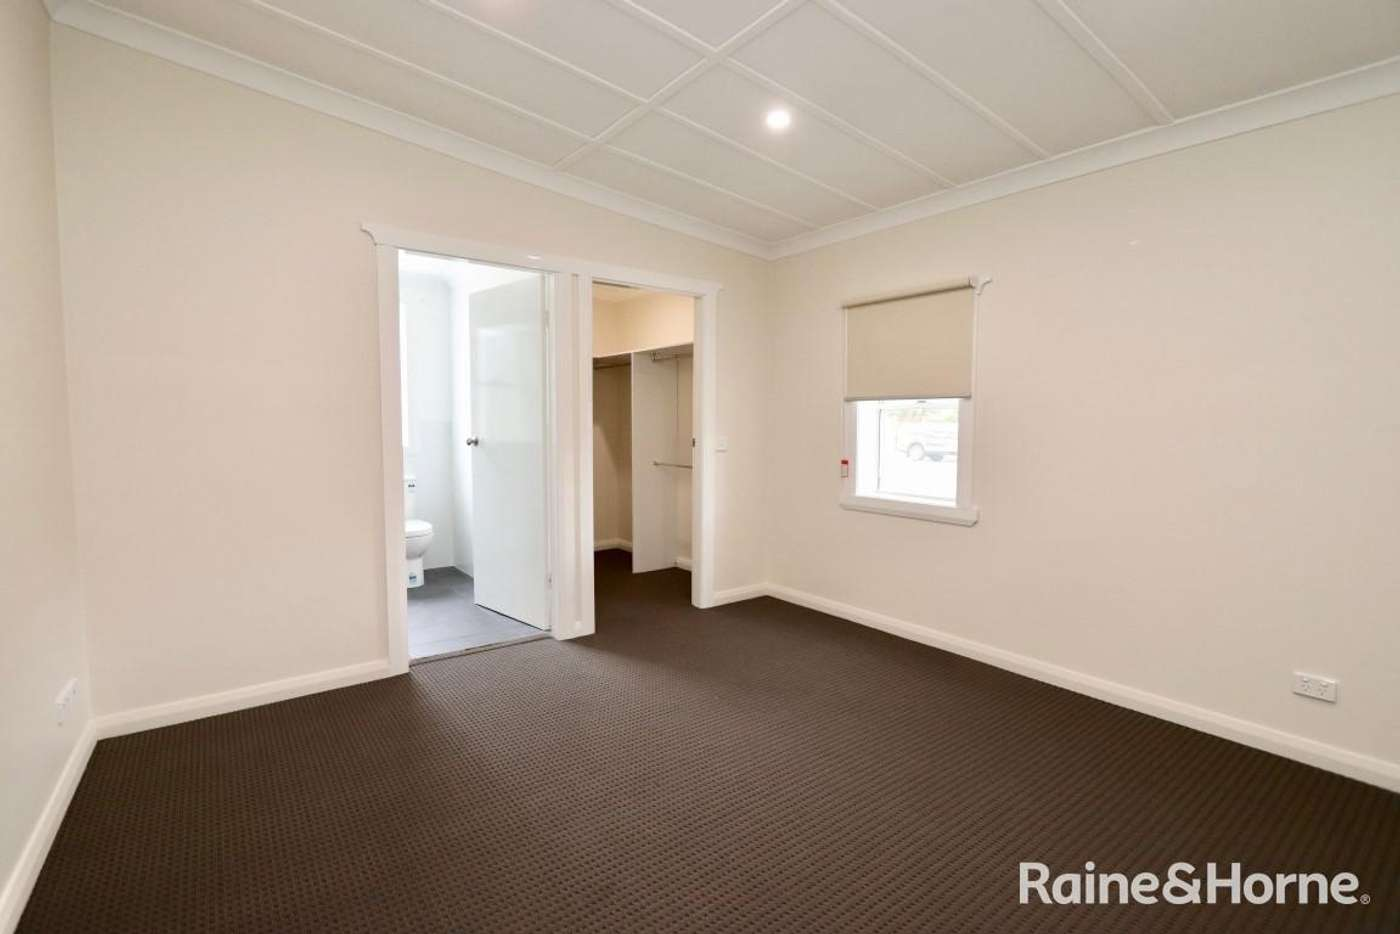 Seventh view of Homely house listing, 180 Stewart Street, Bathurst NSW 2795